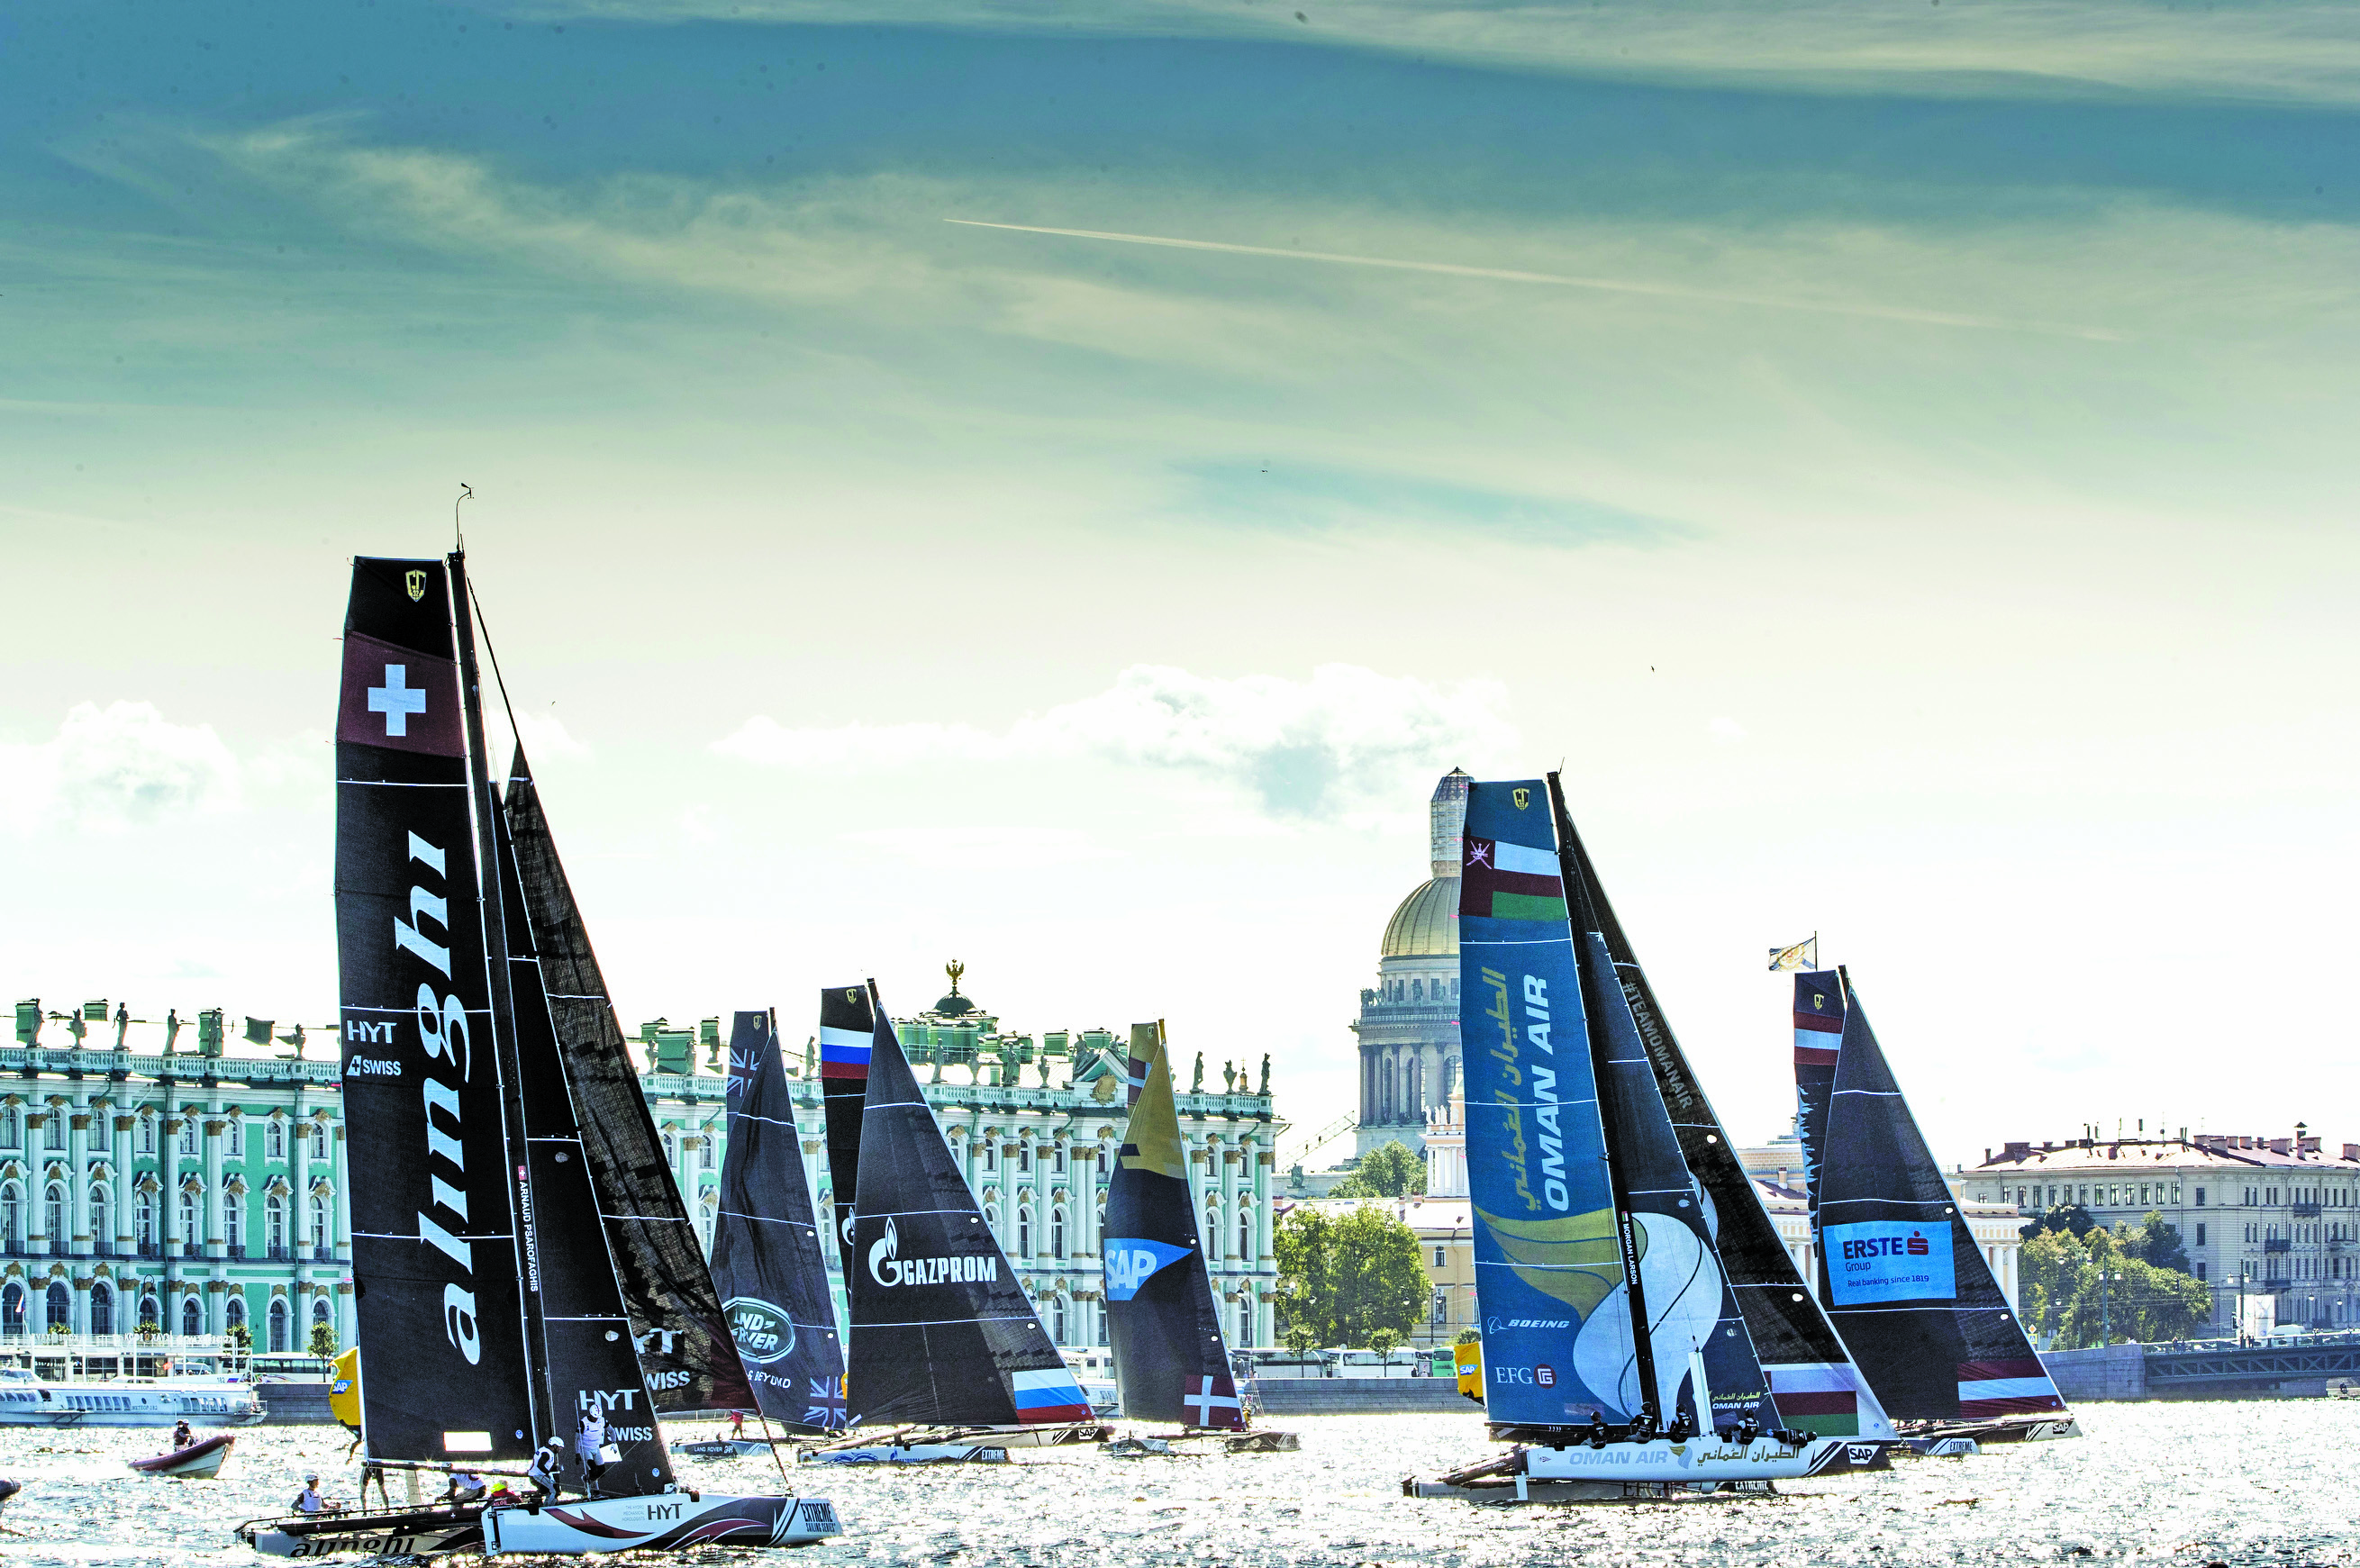 Oman Sail: Oman Air well placed at Extreme Sailing Series Act 5 in St Petersburg